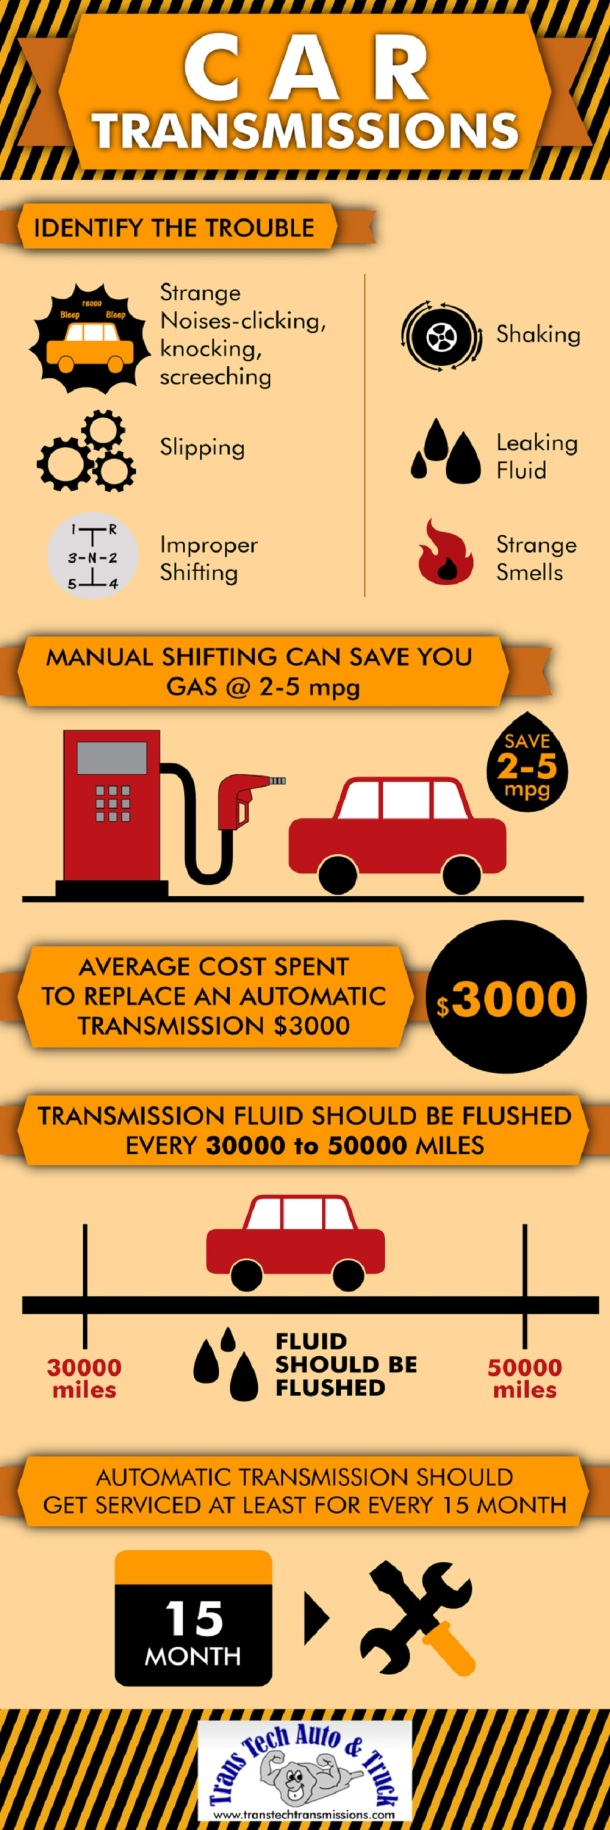 Colorado Springs Auto Transmission